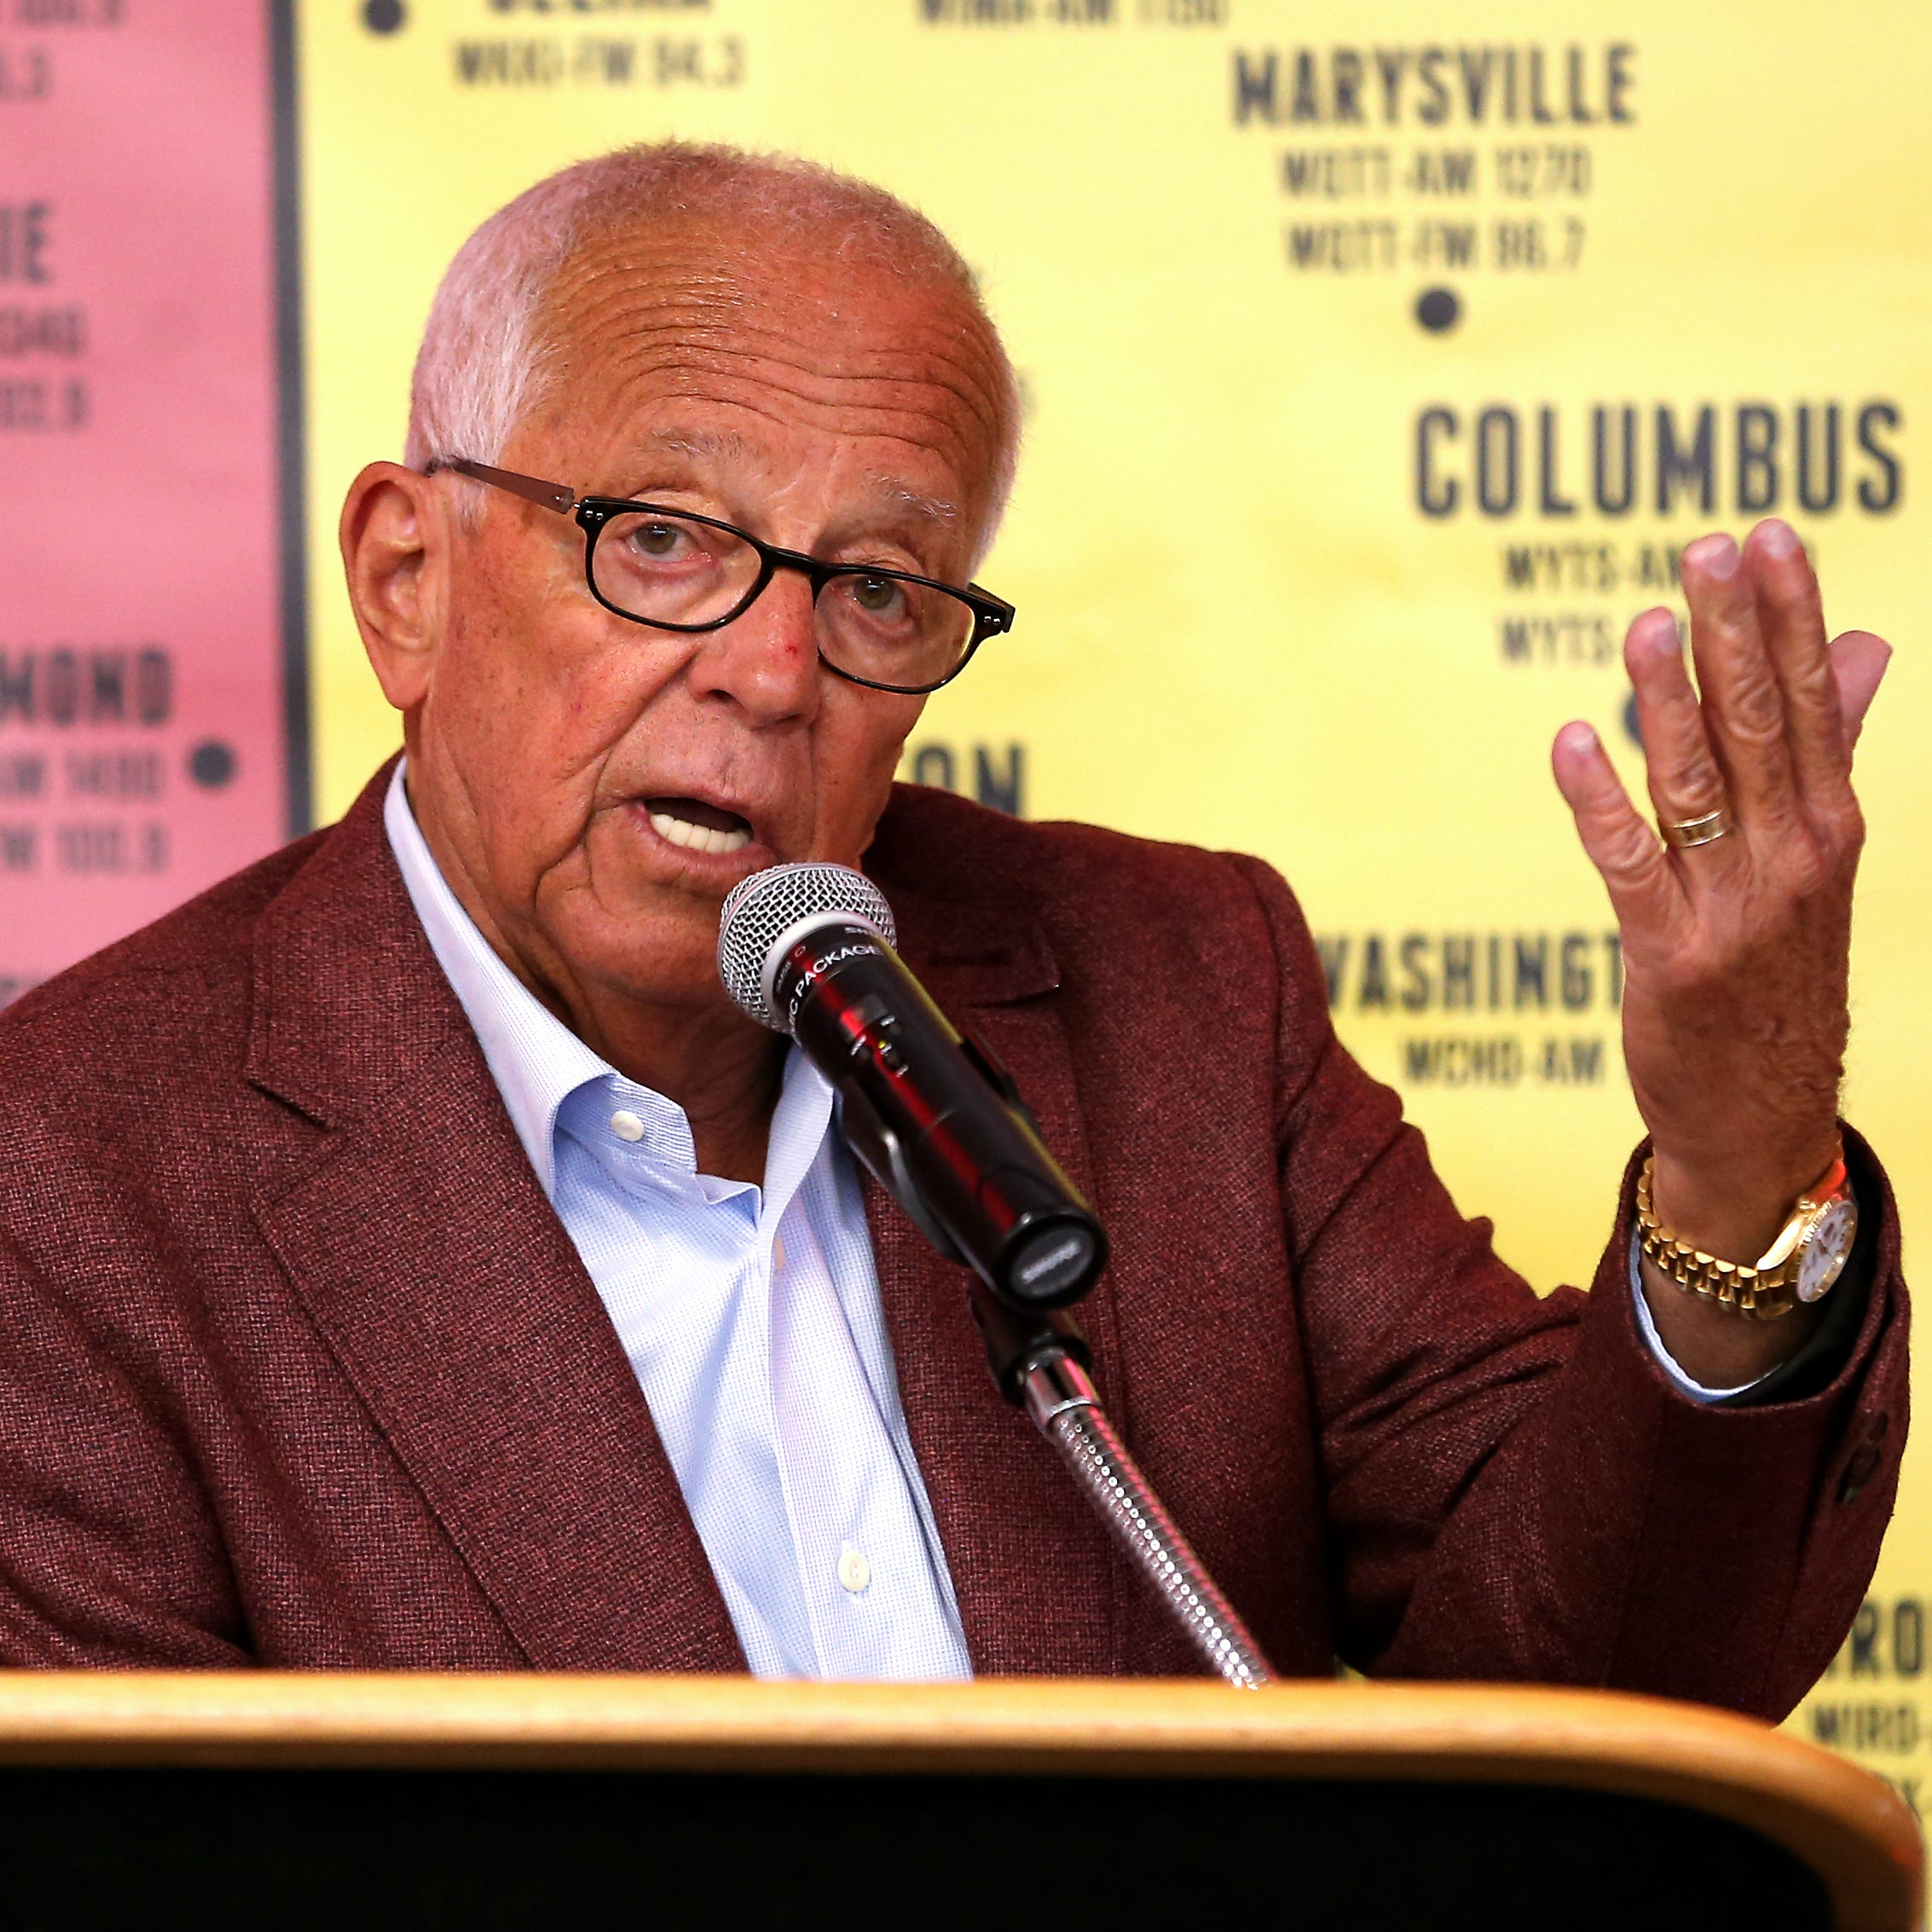 Cincinnati Reds broadcaster Marty Brennaman announces 2019 is his final season